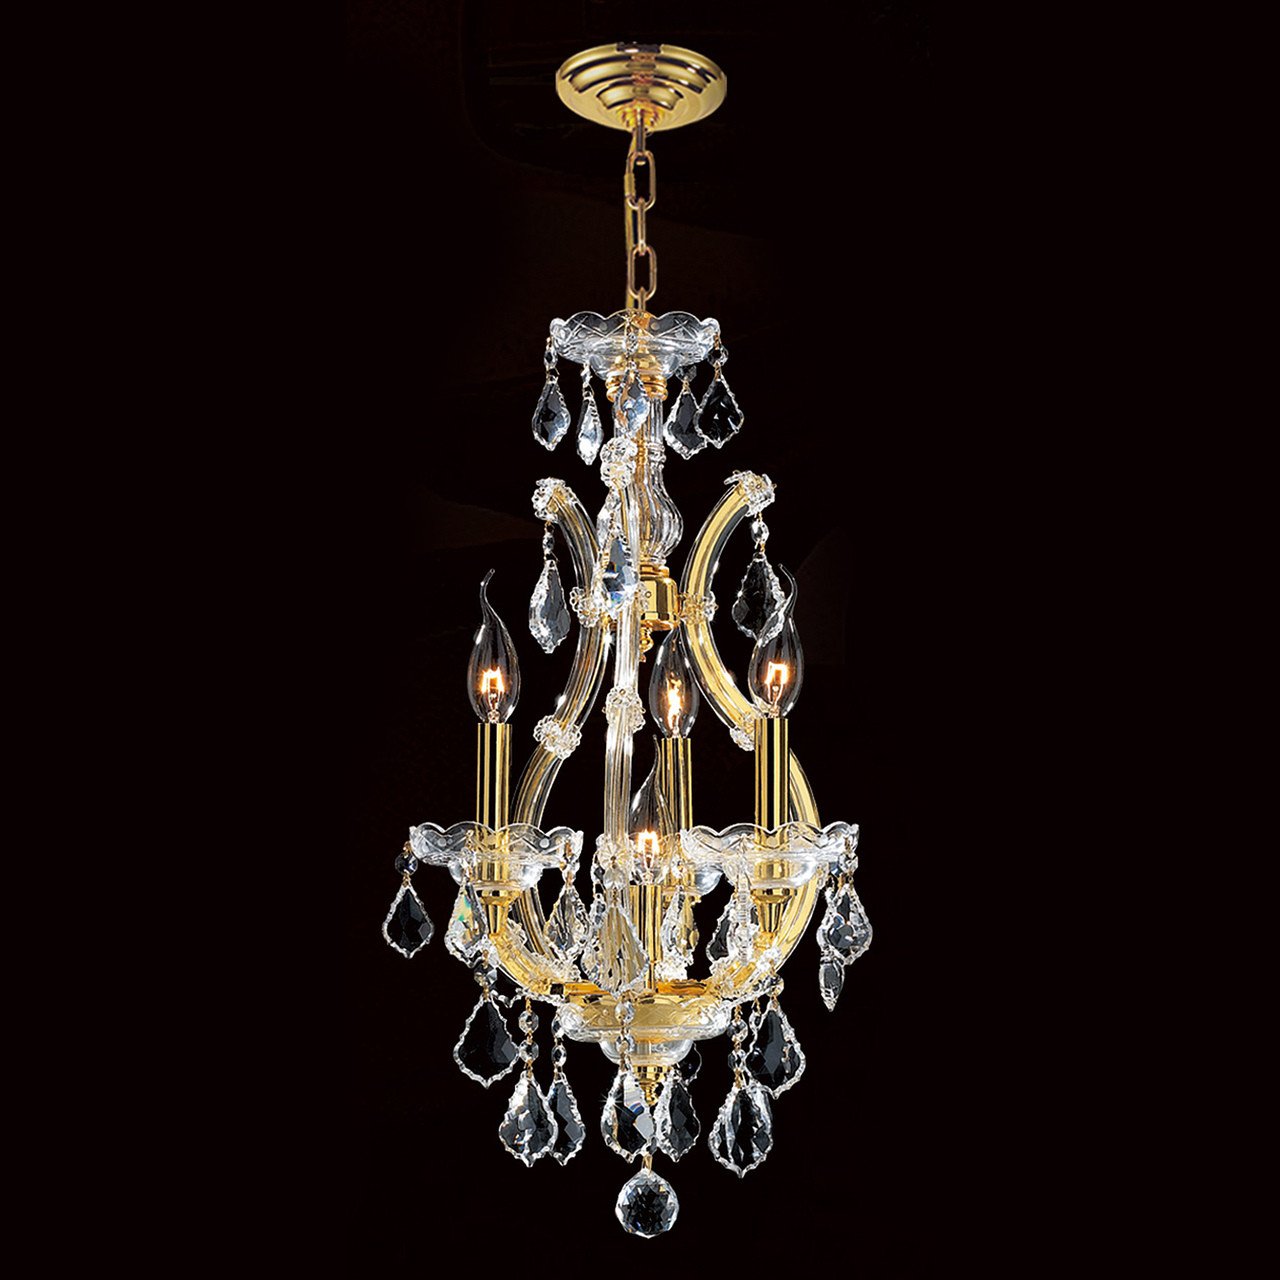 4 light maria theresa mini crystal chandeliers kl 41039 4 g